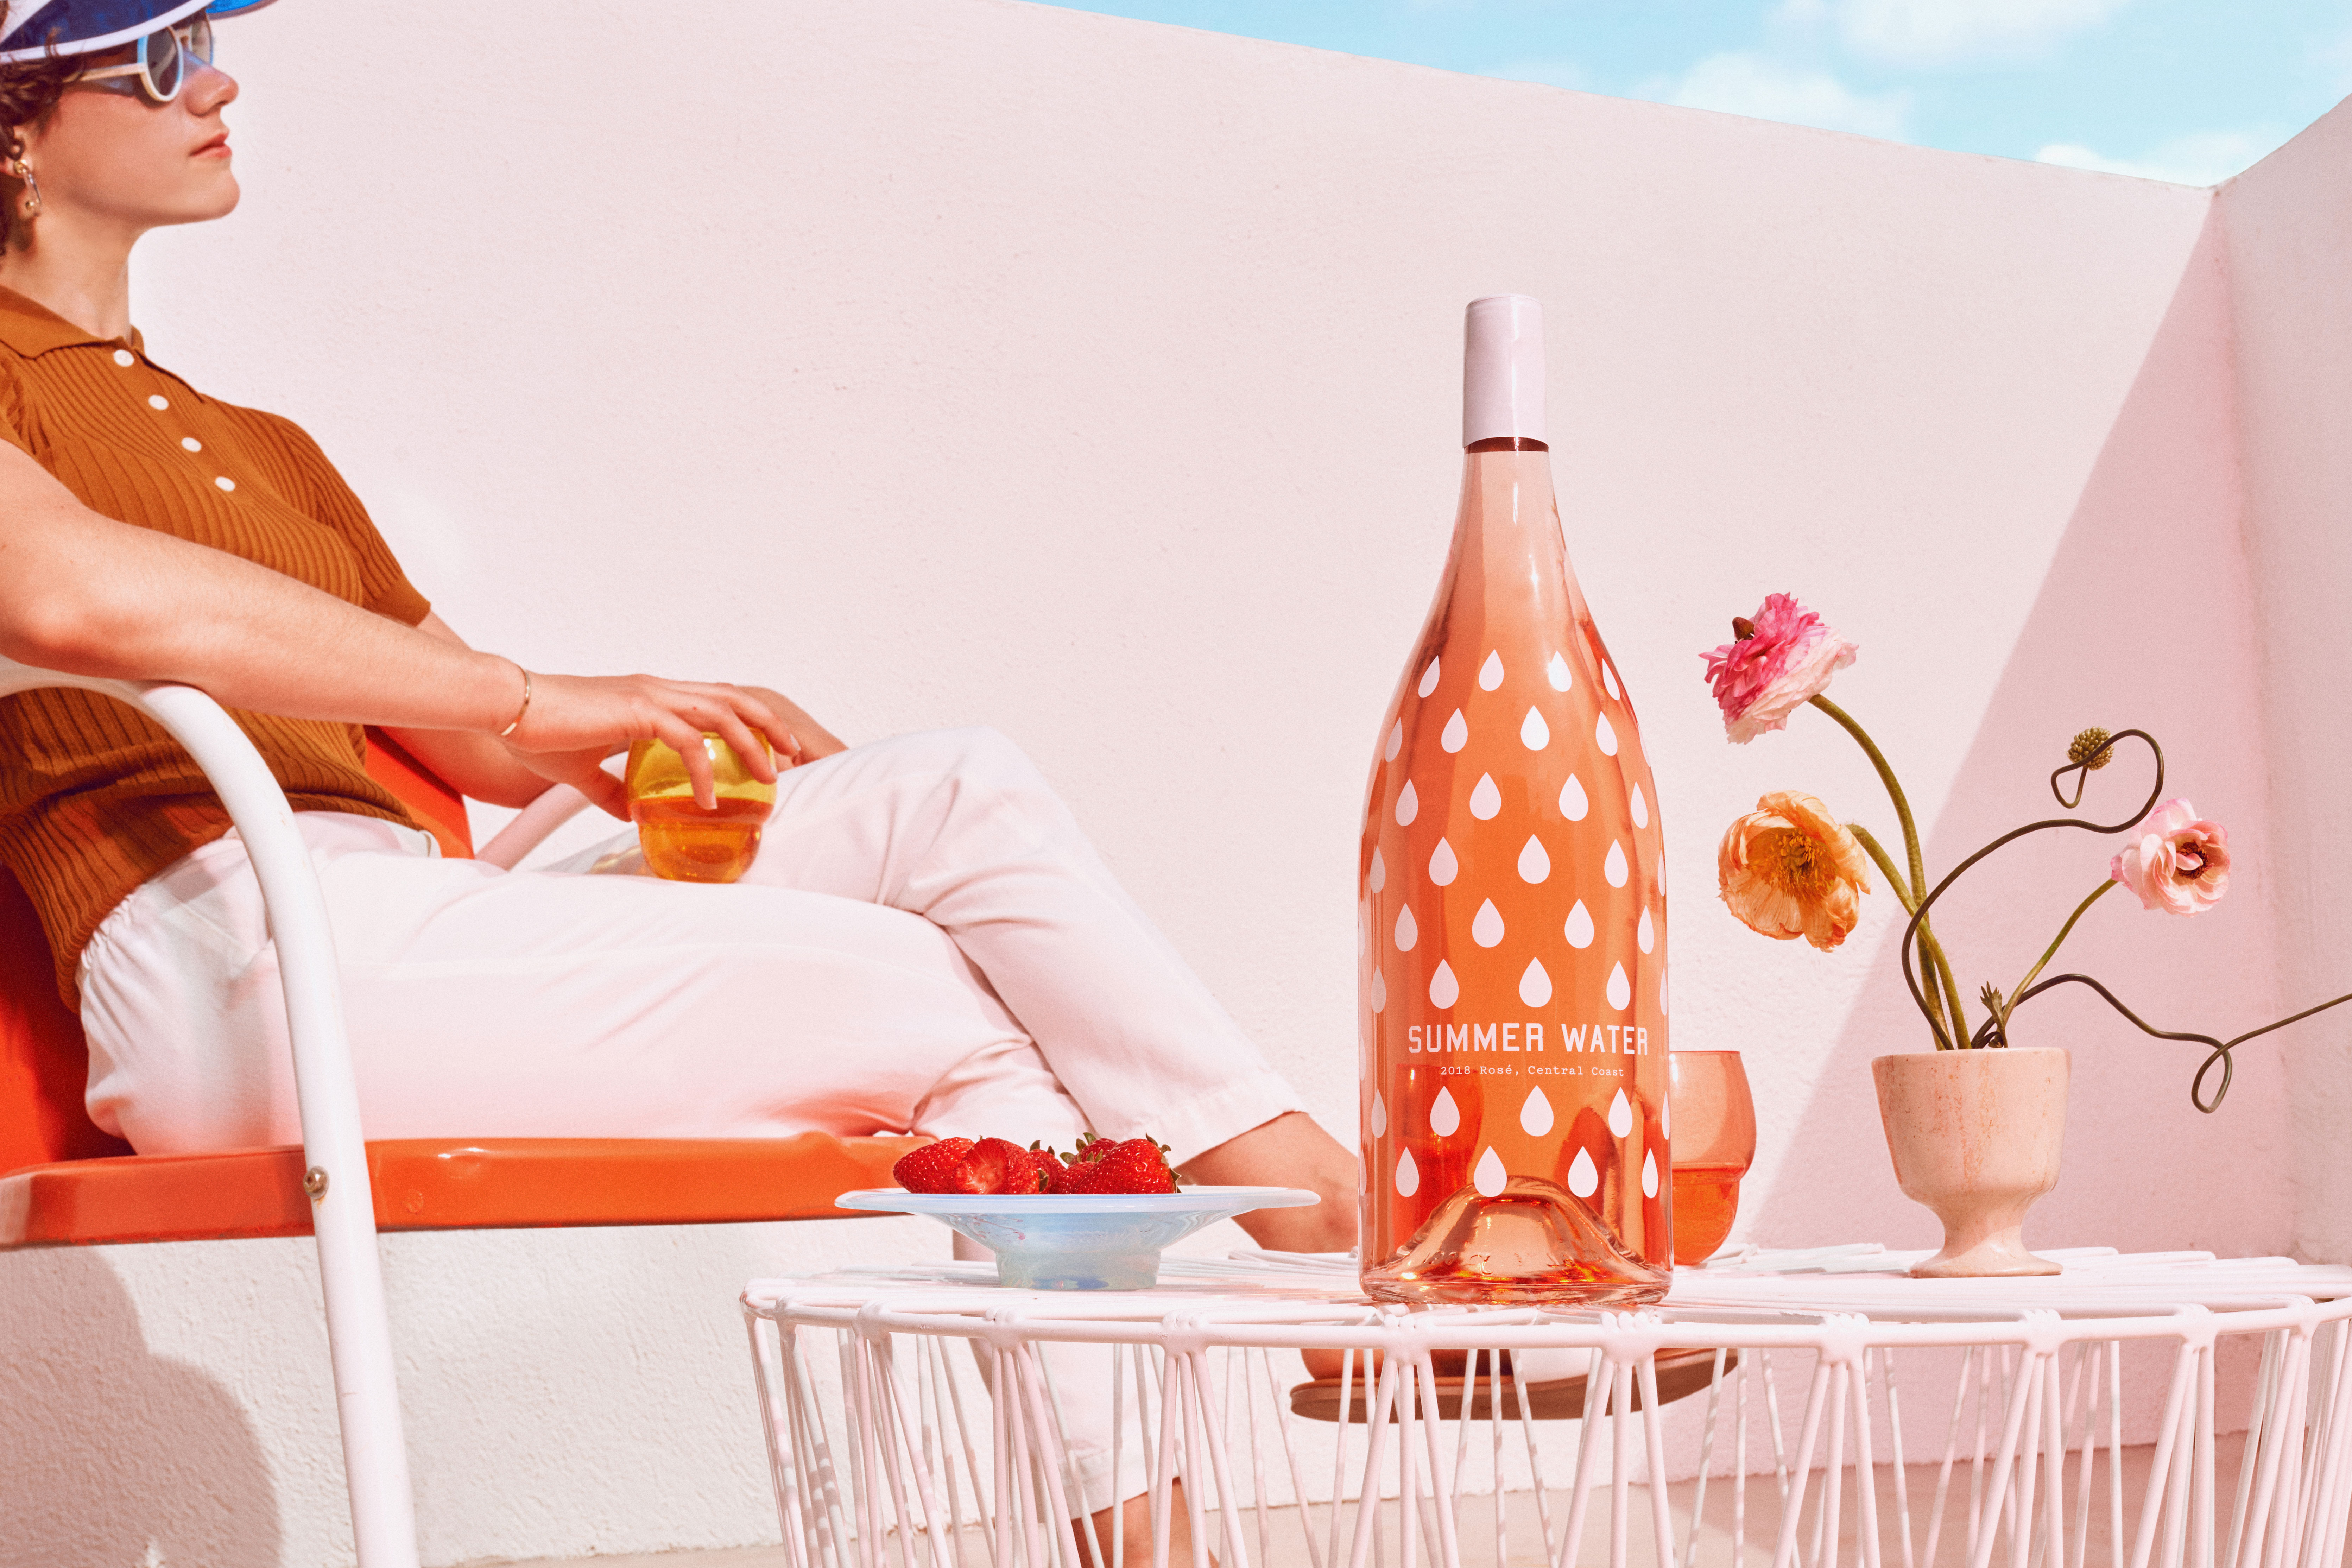 Summer Water Rosé Wine Subscription Mother's Day Gifts for the Foodie in Your Life - What's better than one bottle of rosé for mom? A whole season's worth of a version of the trendy pink drink called Summer Water!